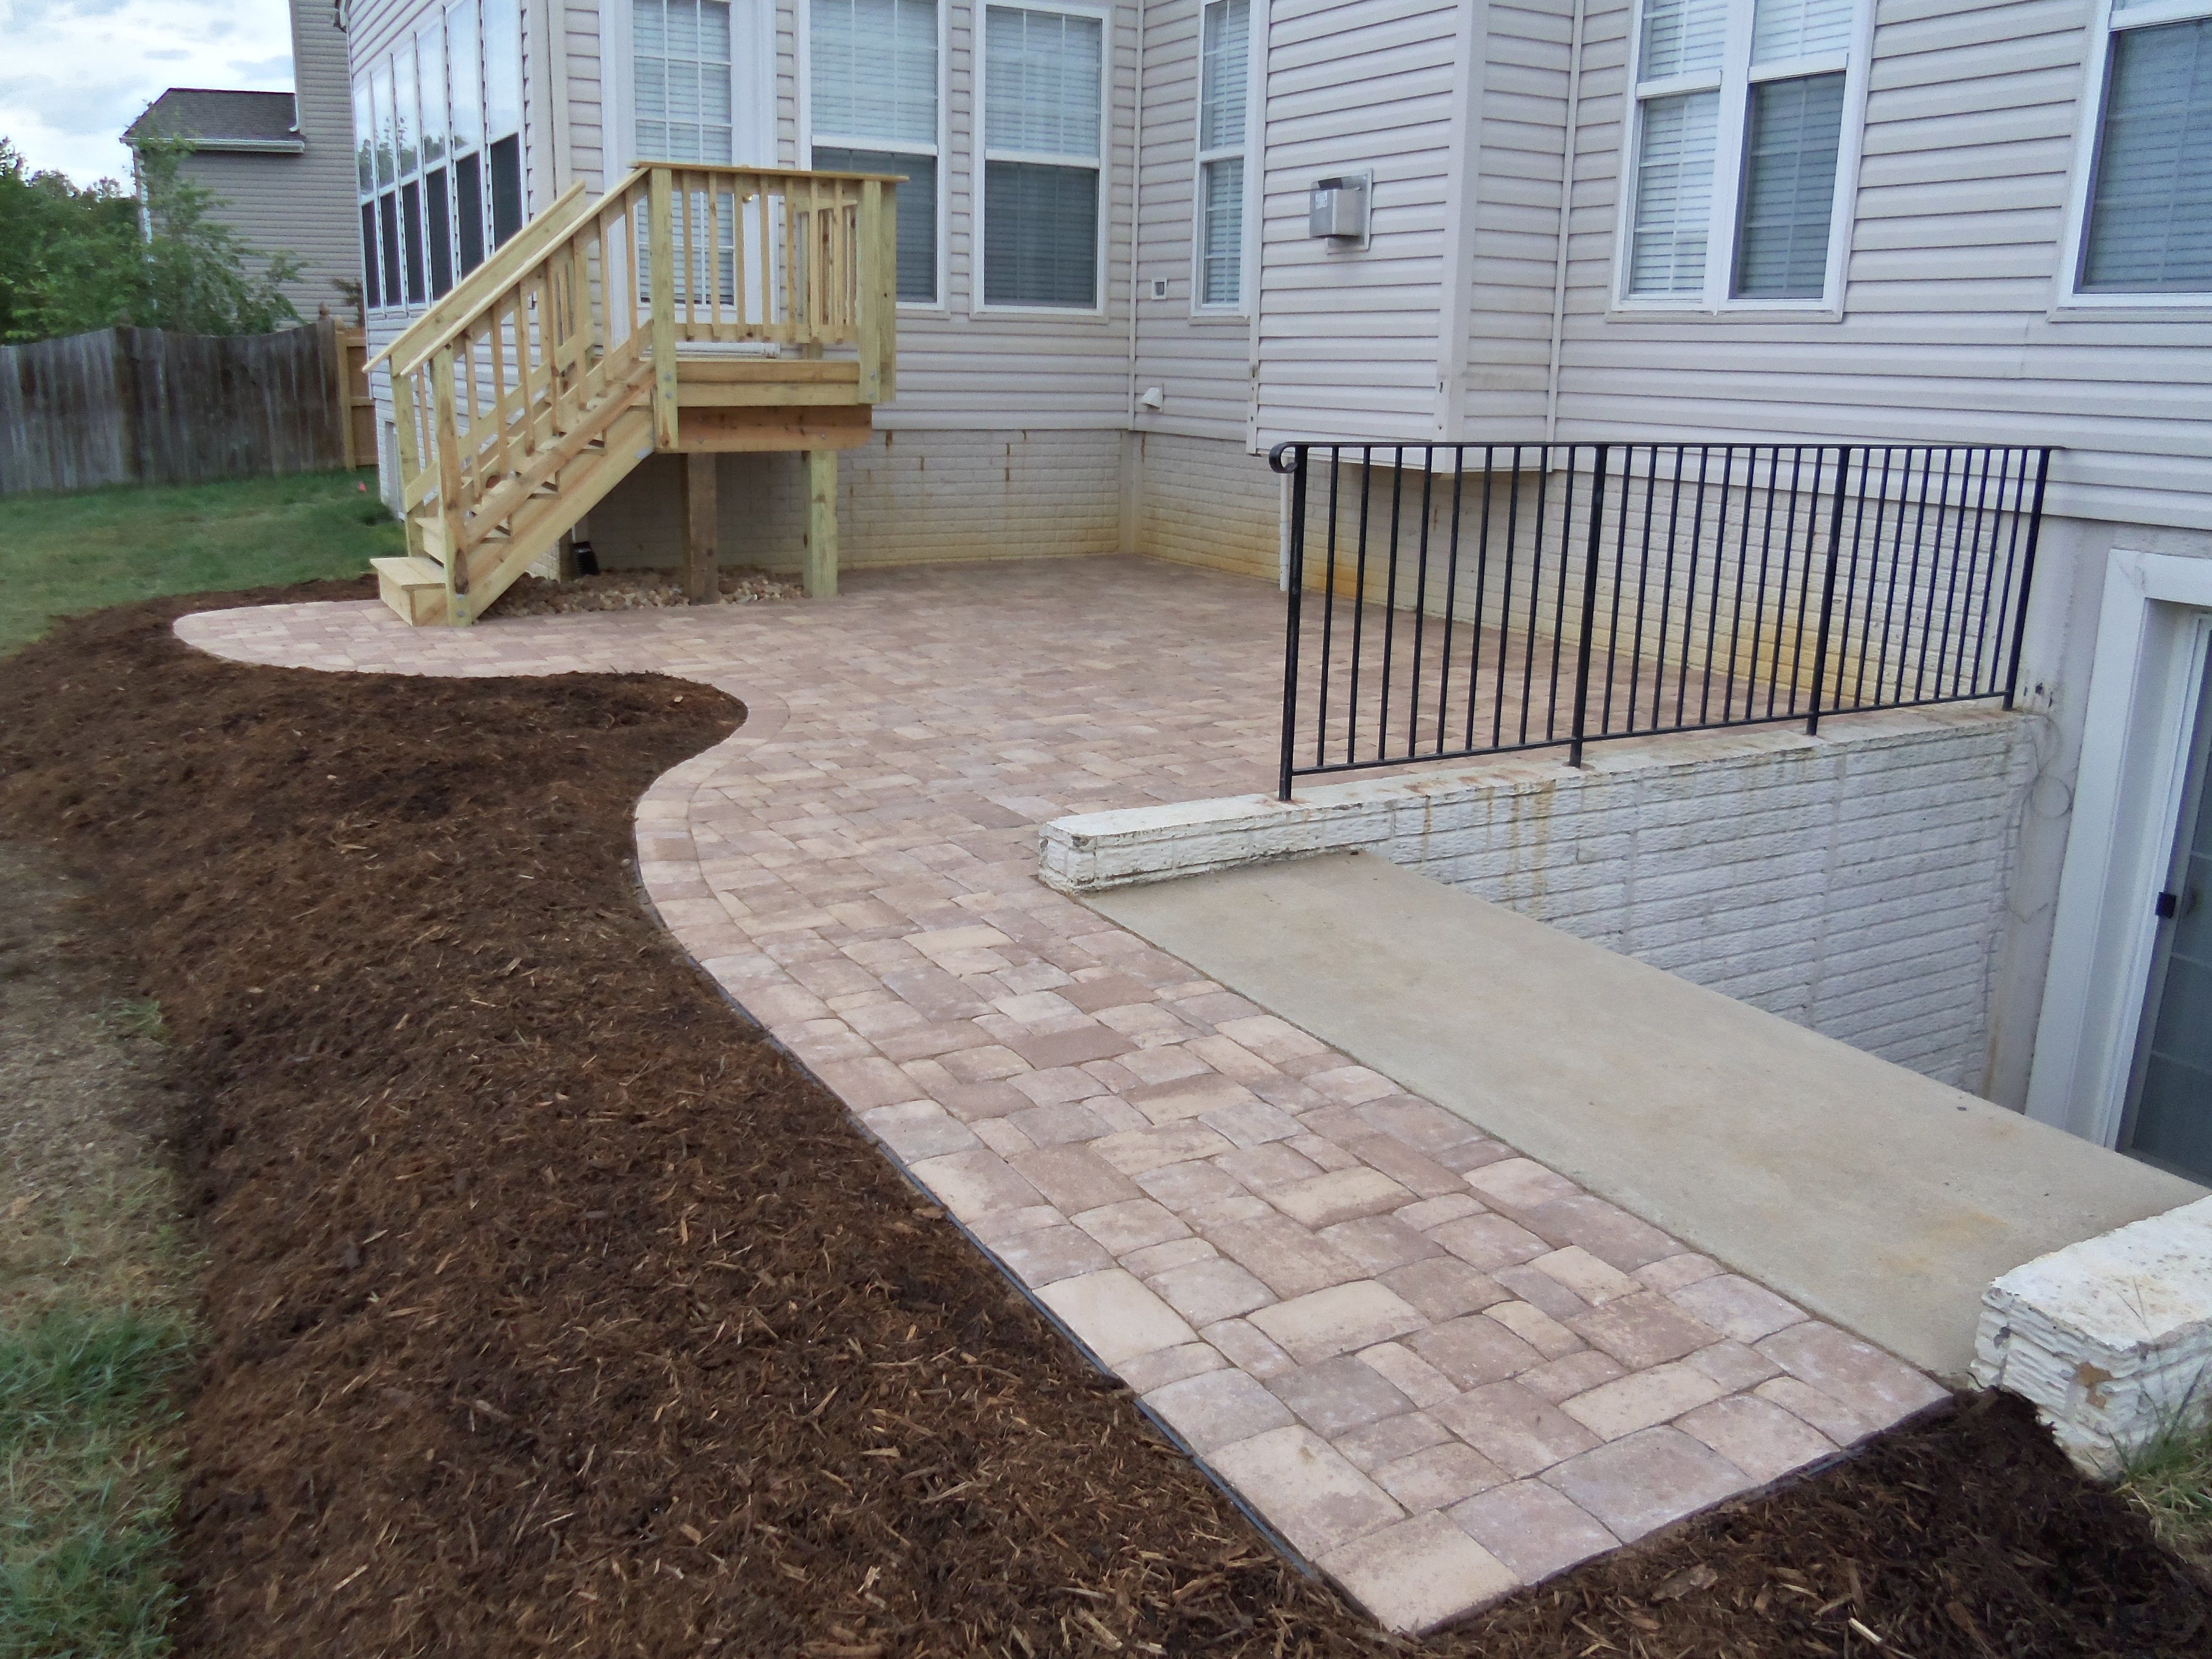 I really like the large paver patio connecting the staircase from